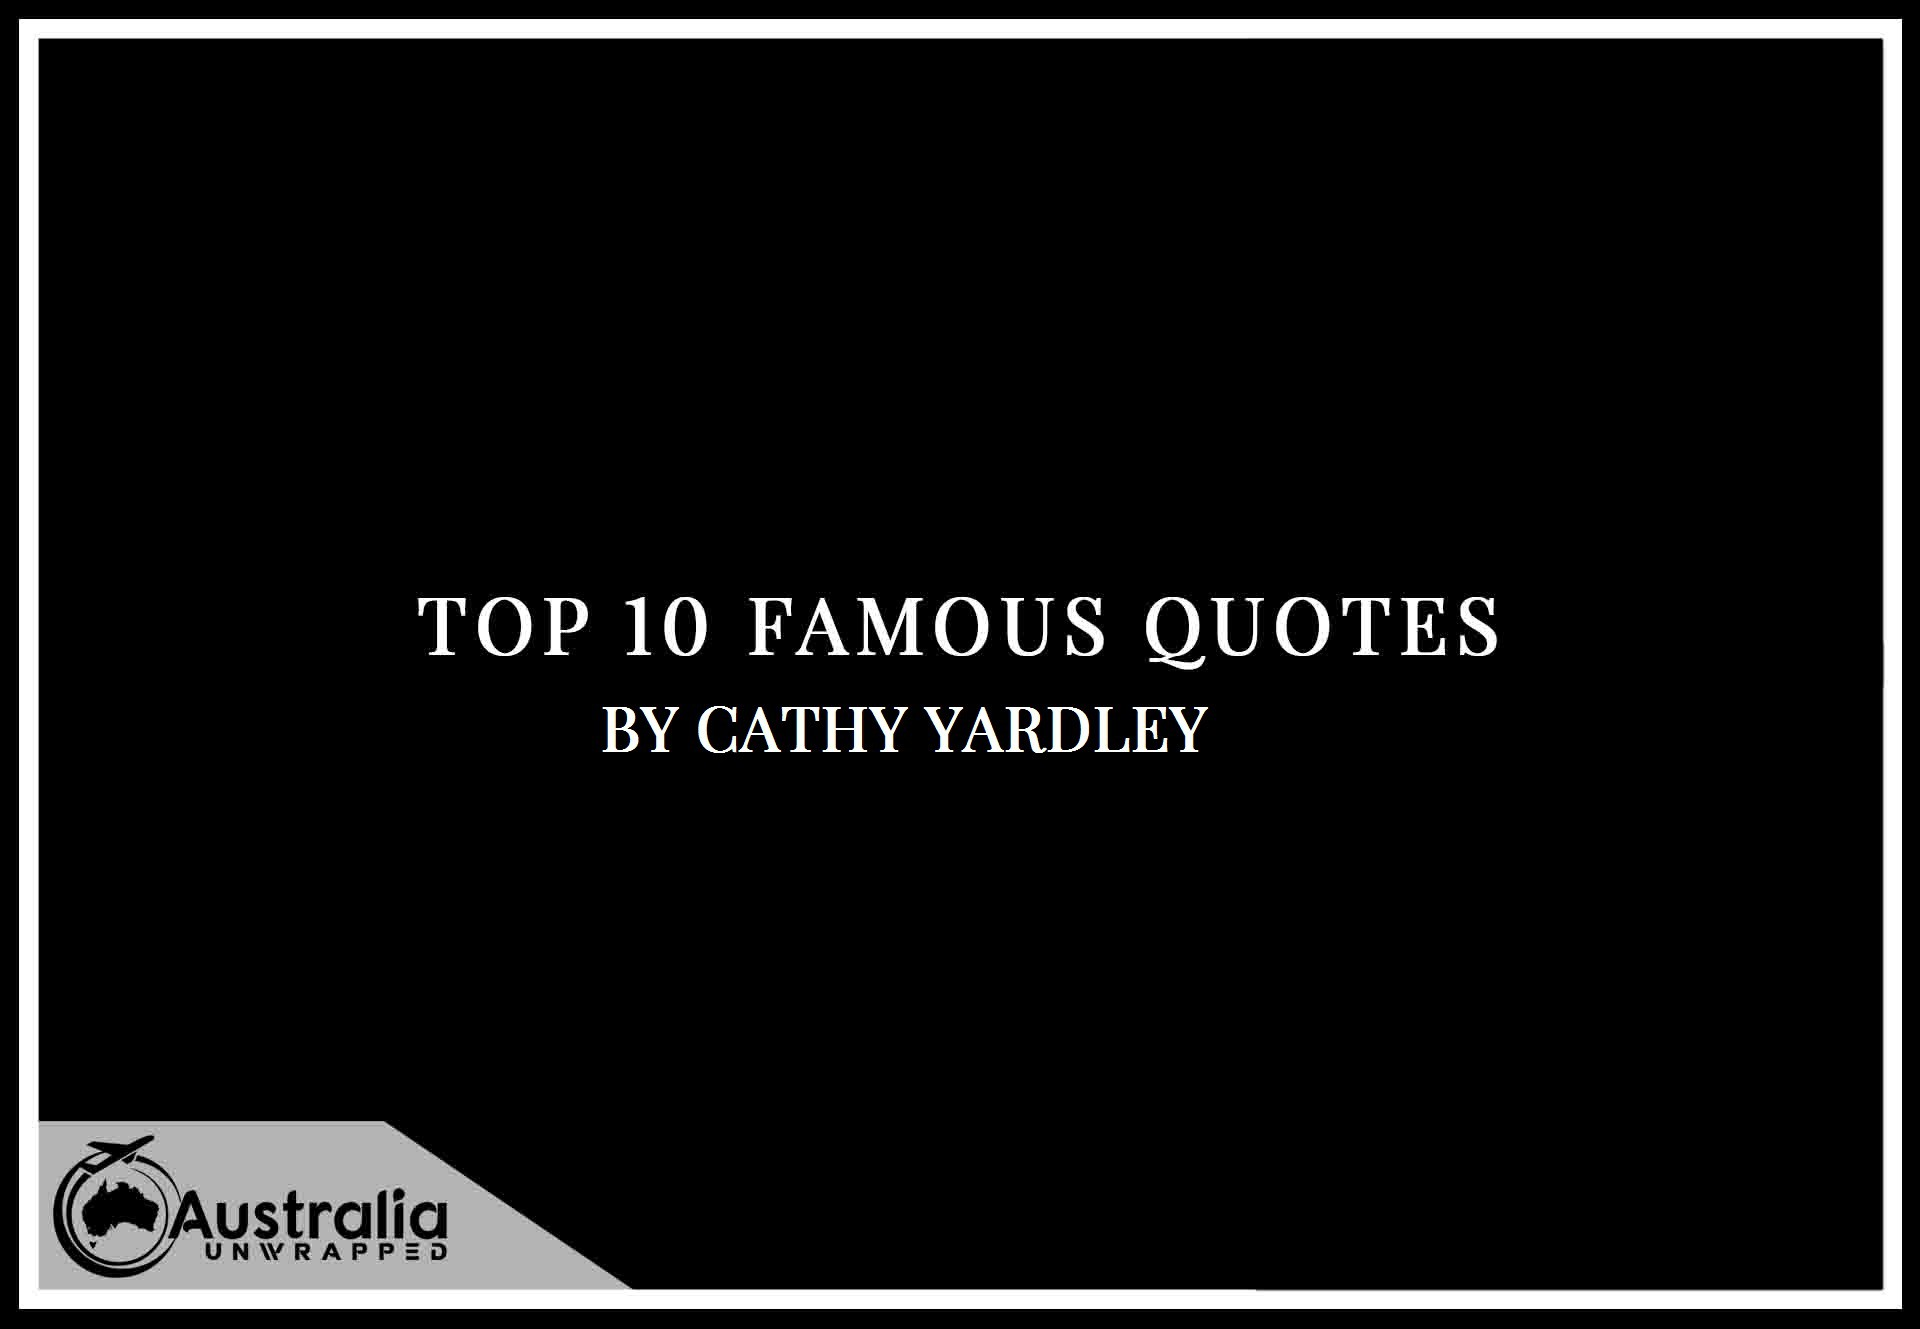 Cathy Yardley's Top 10 Popular and Famous Quotes